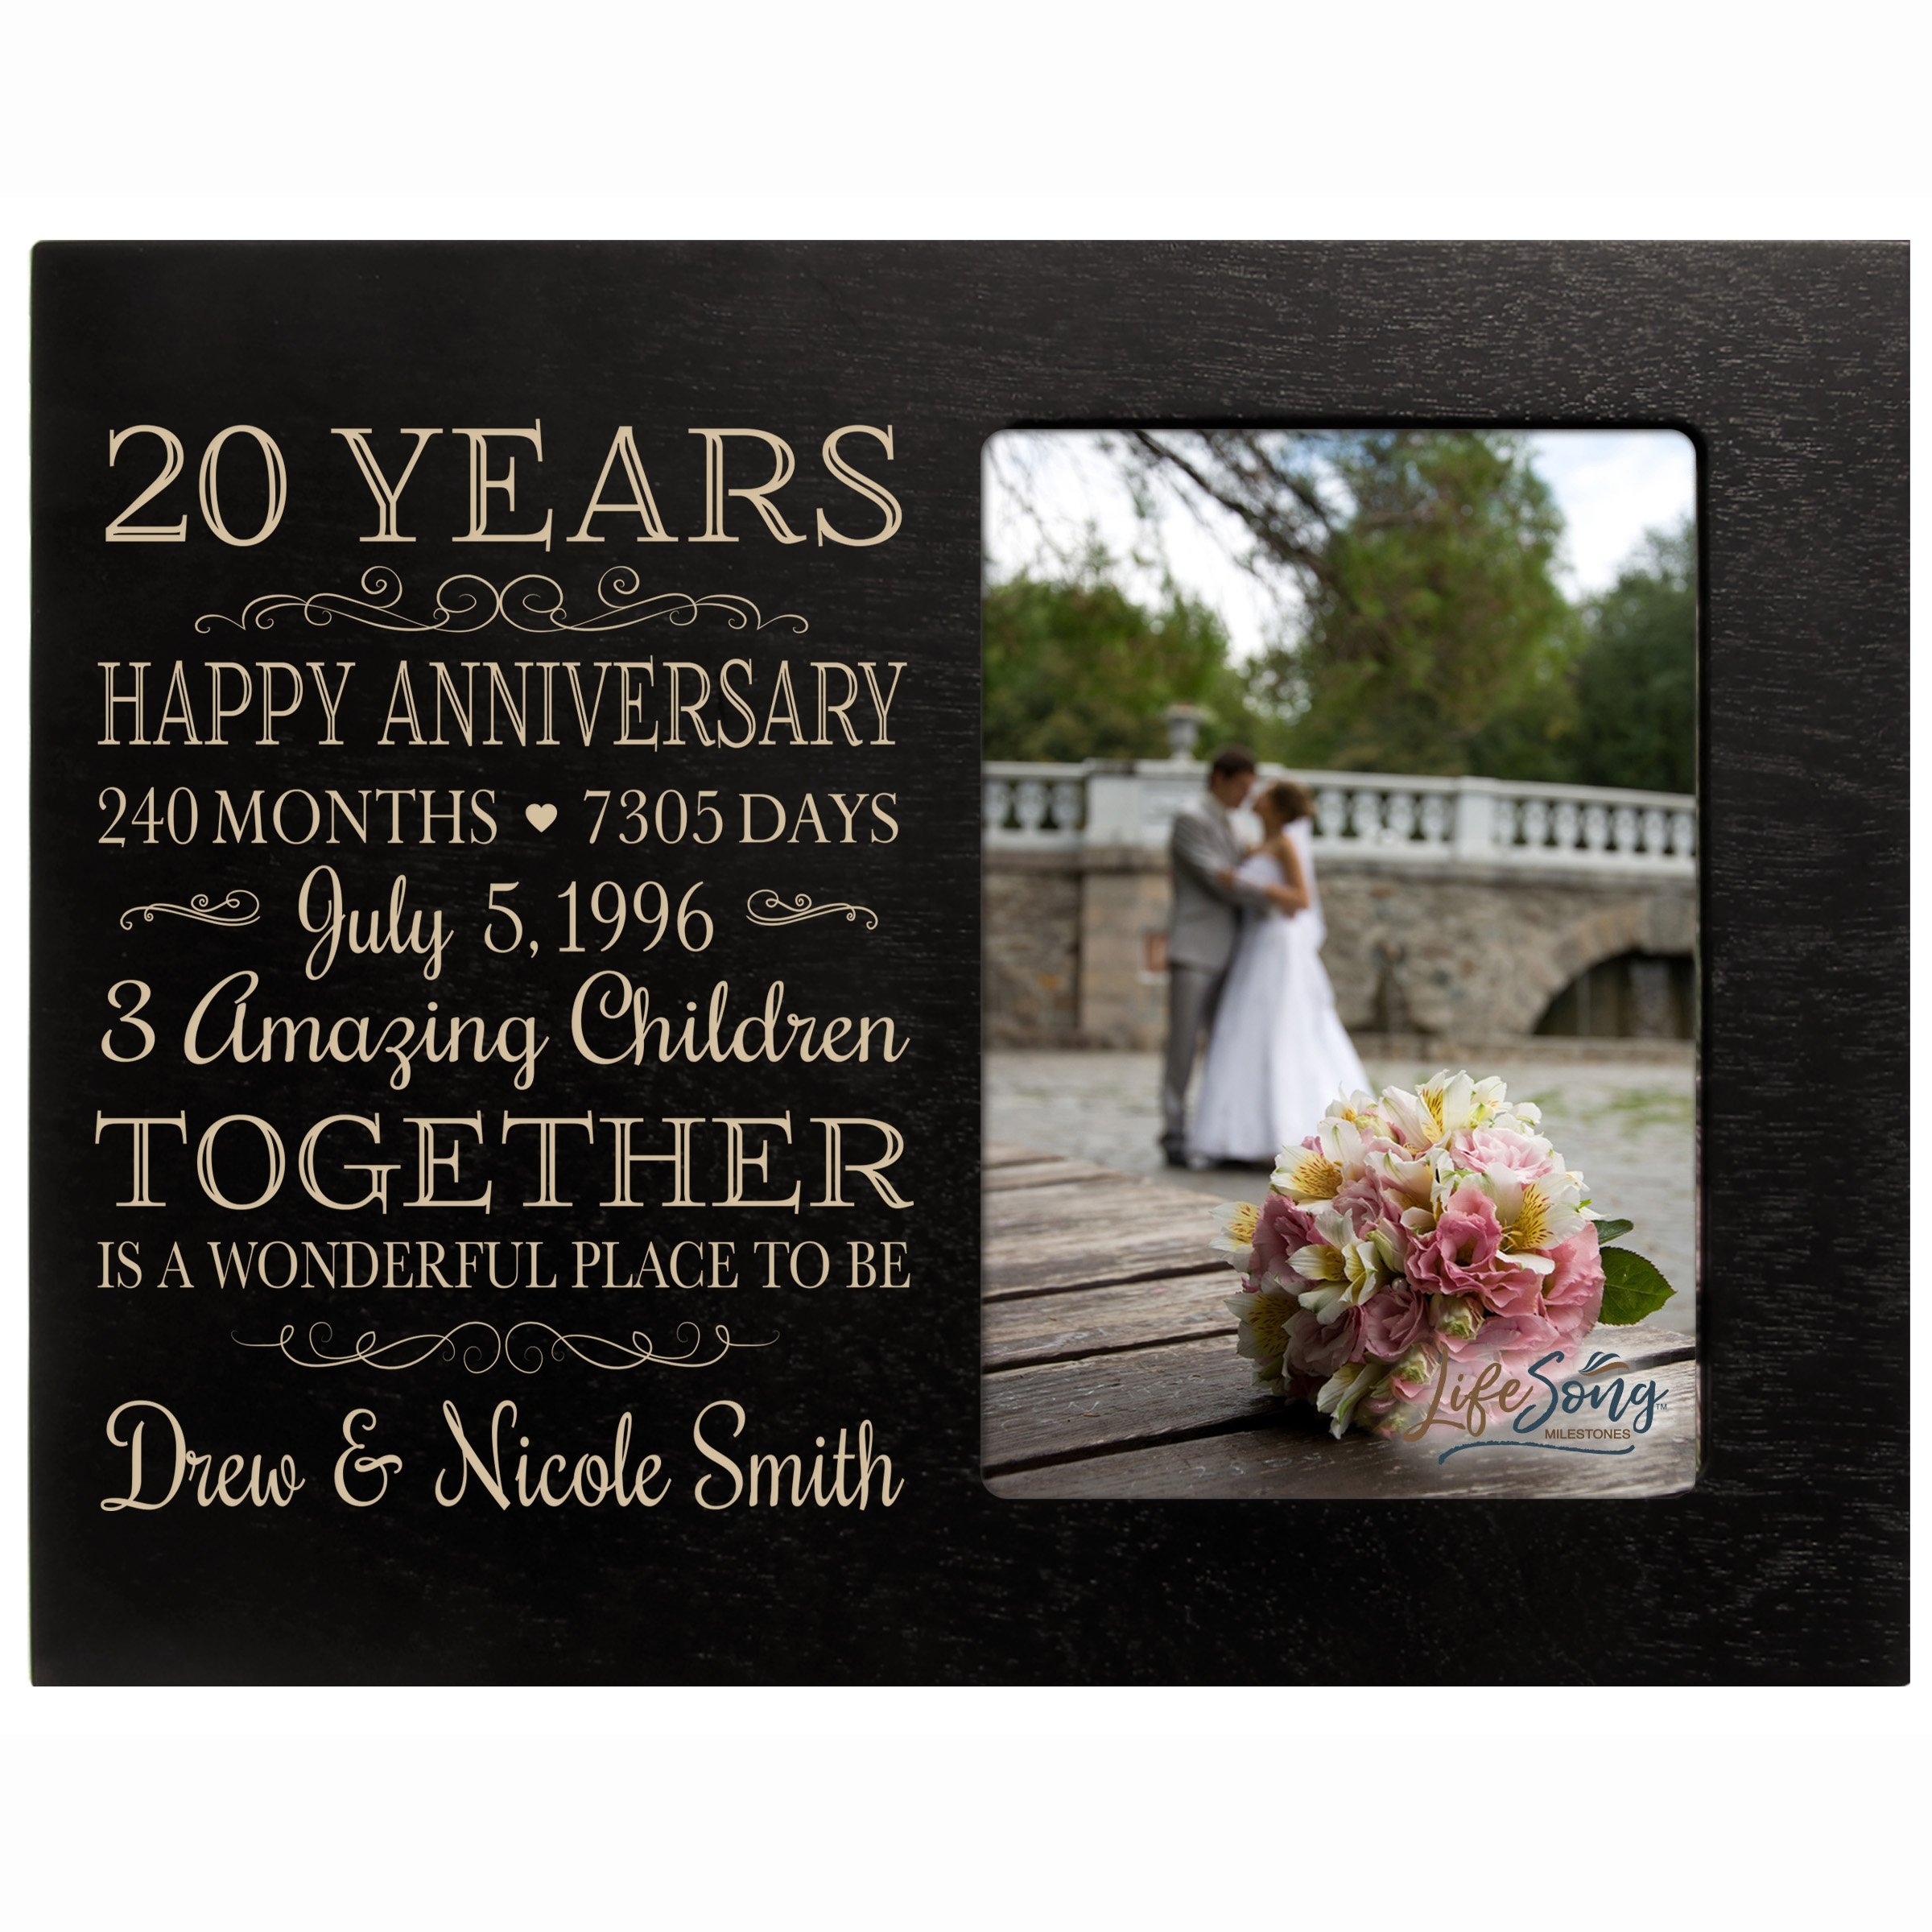 LifeSong Milestones Personalized Twenty Year for her him Couple Custom Engraved Wedding Gift for Husband Wife Girlfriend Boyfriend Photo Frame Holds 4x6 Photo (Black) by LifeSong Milestones